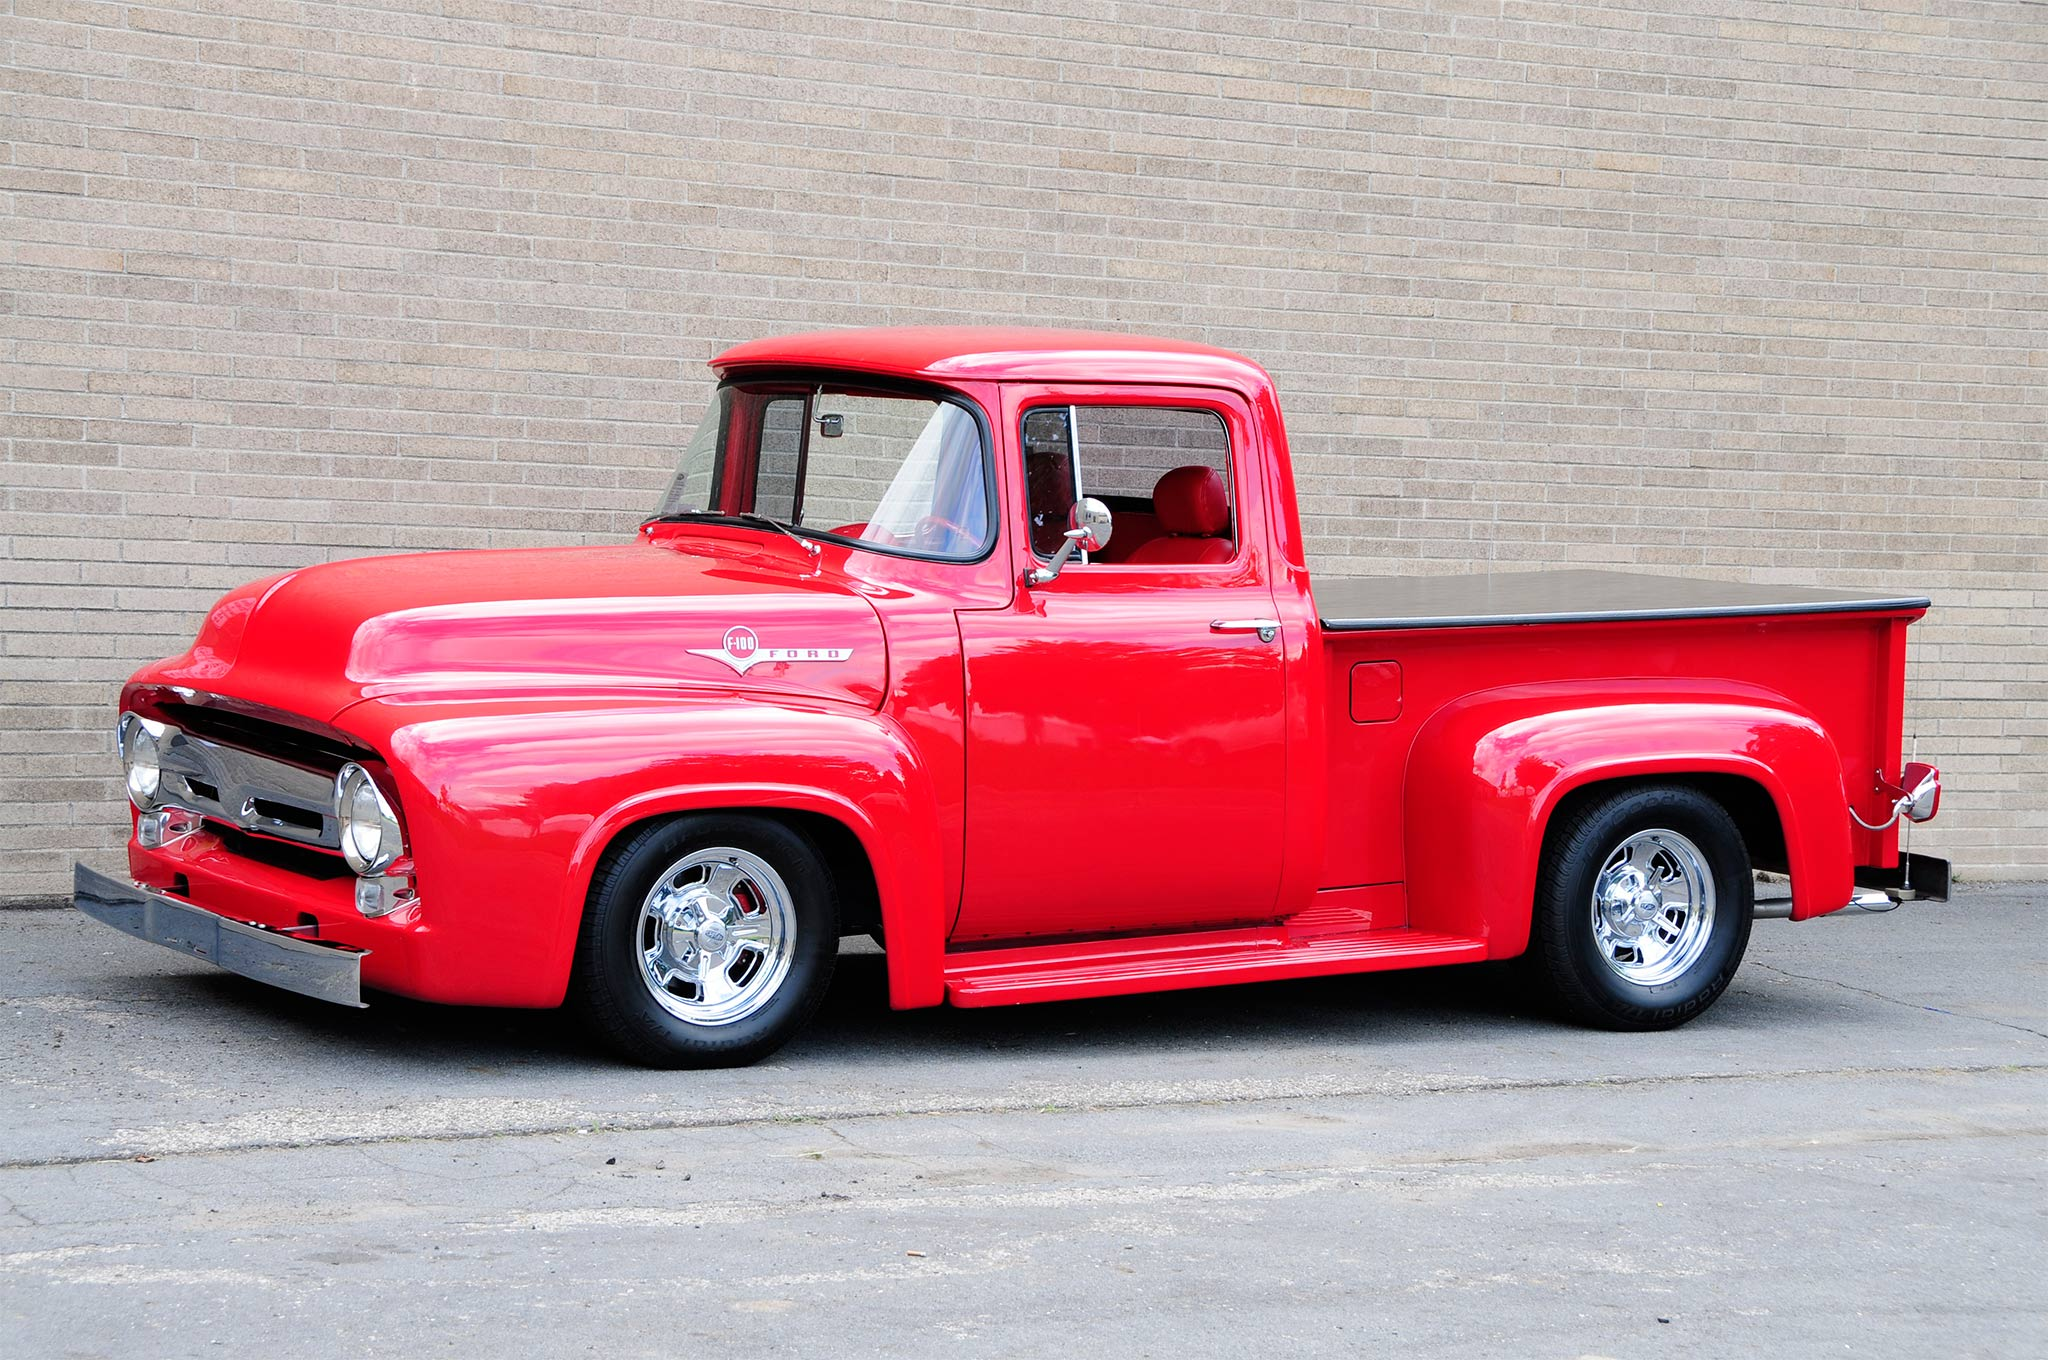 Sporting a perfect hot rod stance thanks to a Fatman Fabrications IFS the truck gets its good looks from a decadent coating of PPG Vermillion Red and plenty of fresh chrome accents. The Cragar Series 390C Street Pro wheels wearing BFGoodrich Radial T/A's are cool.